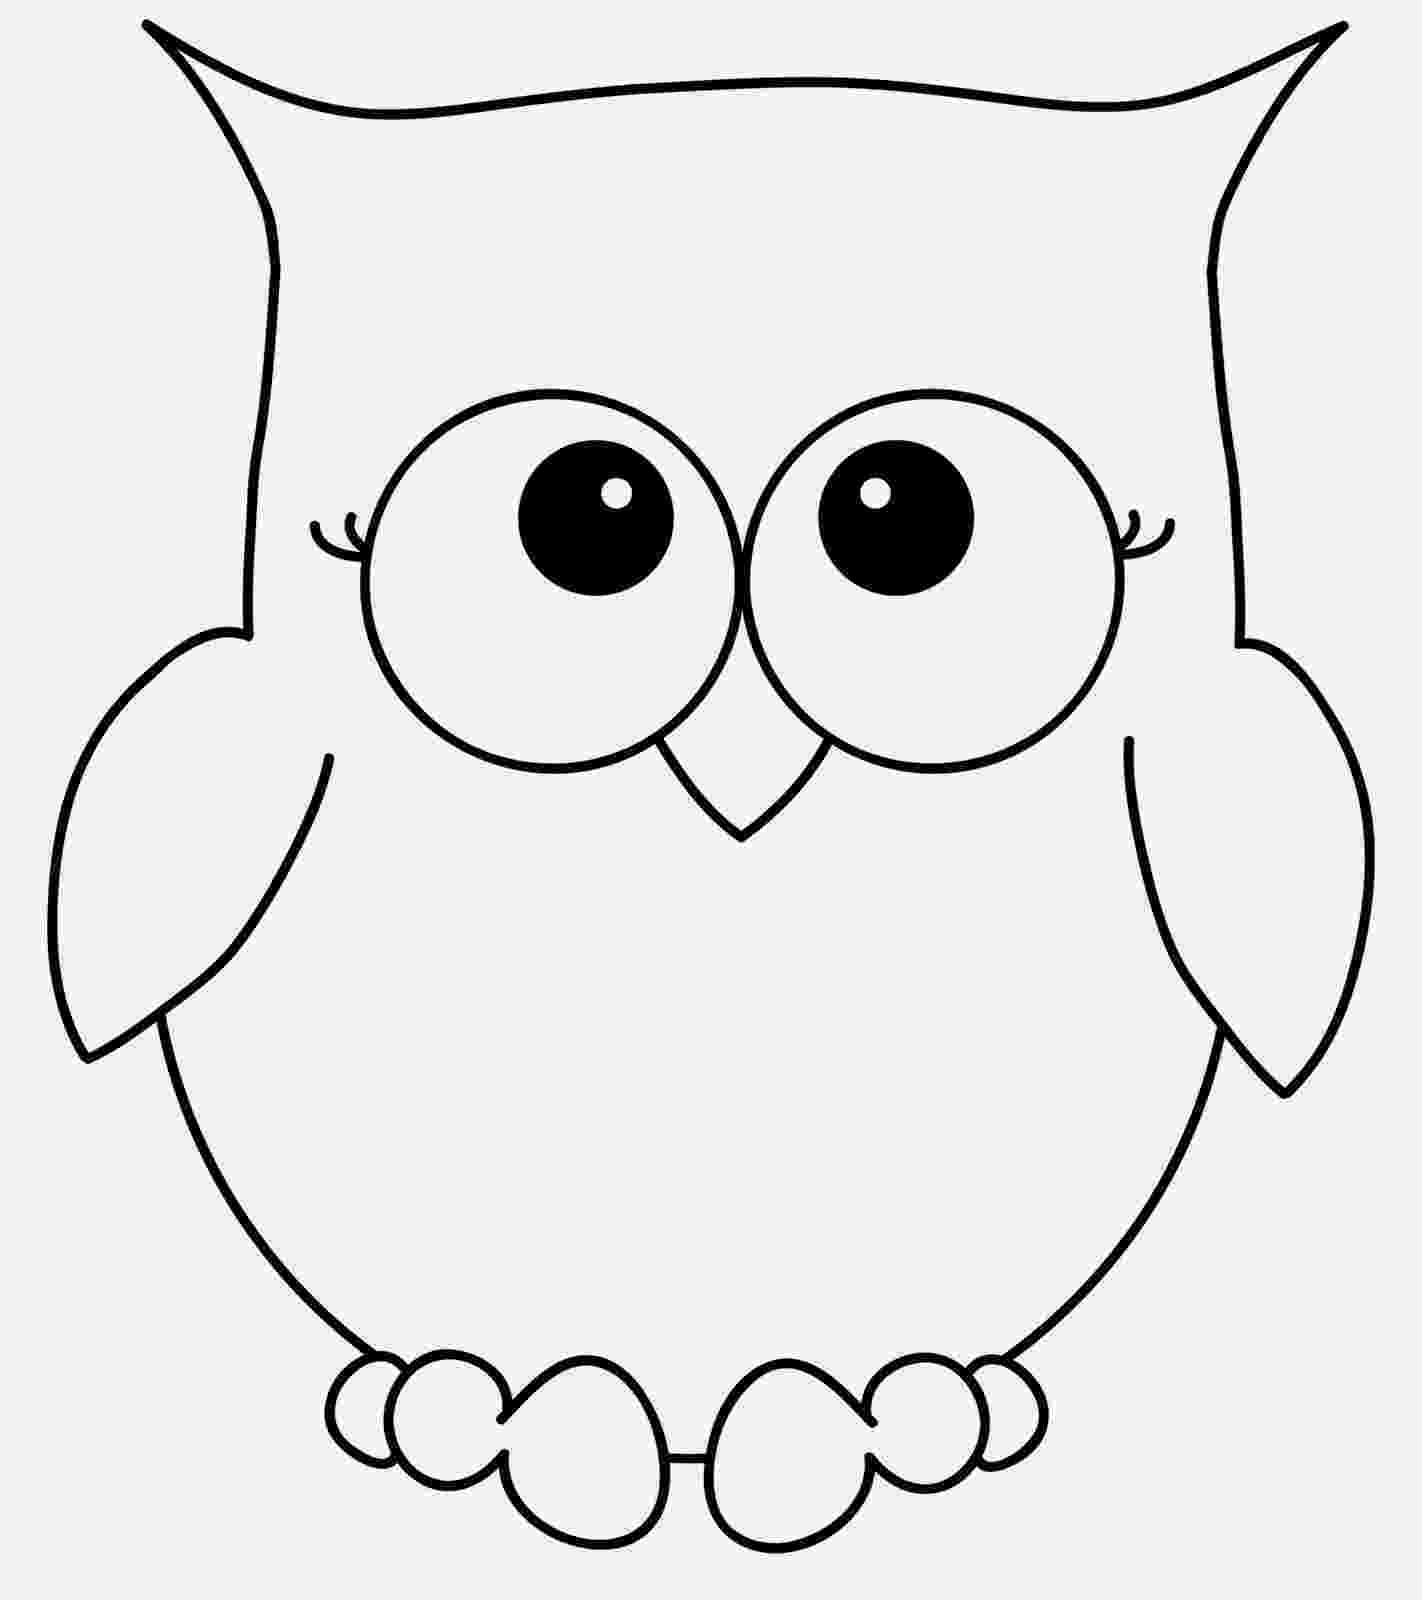 owl coloring sheet owl coloring pages owl coloring pages coloring sheet owl